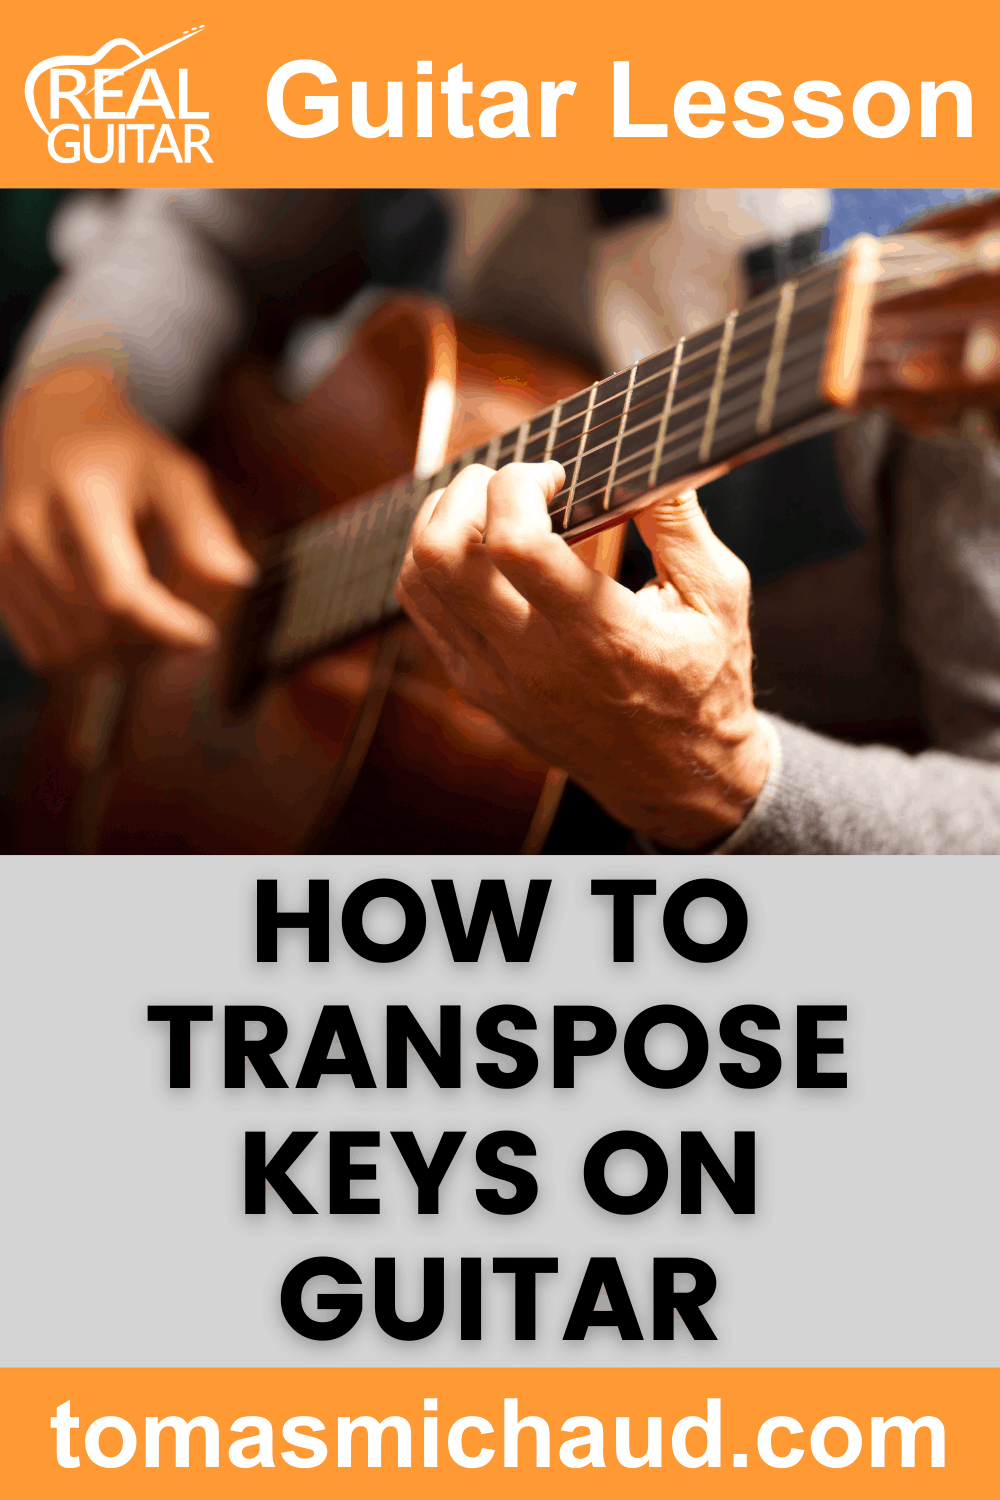 How to Transpose Keys On Guitar